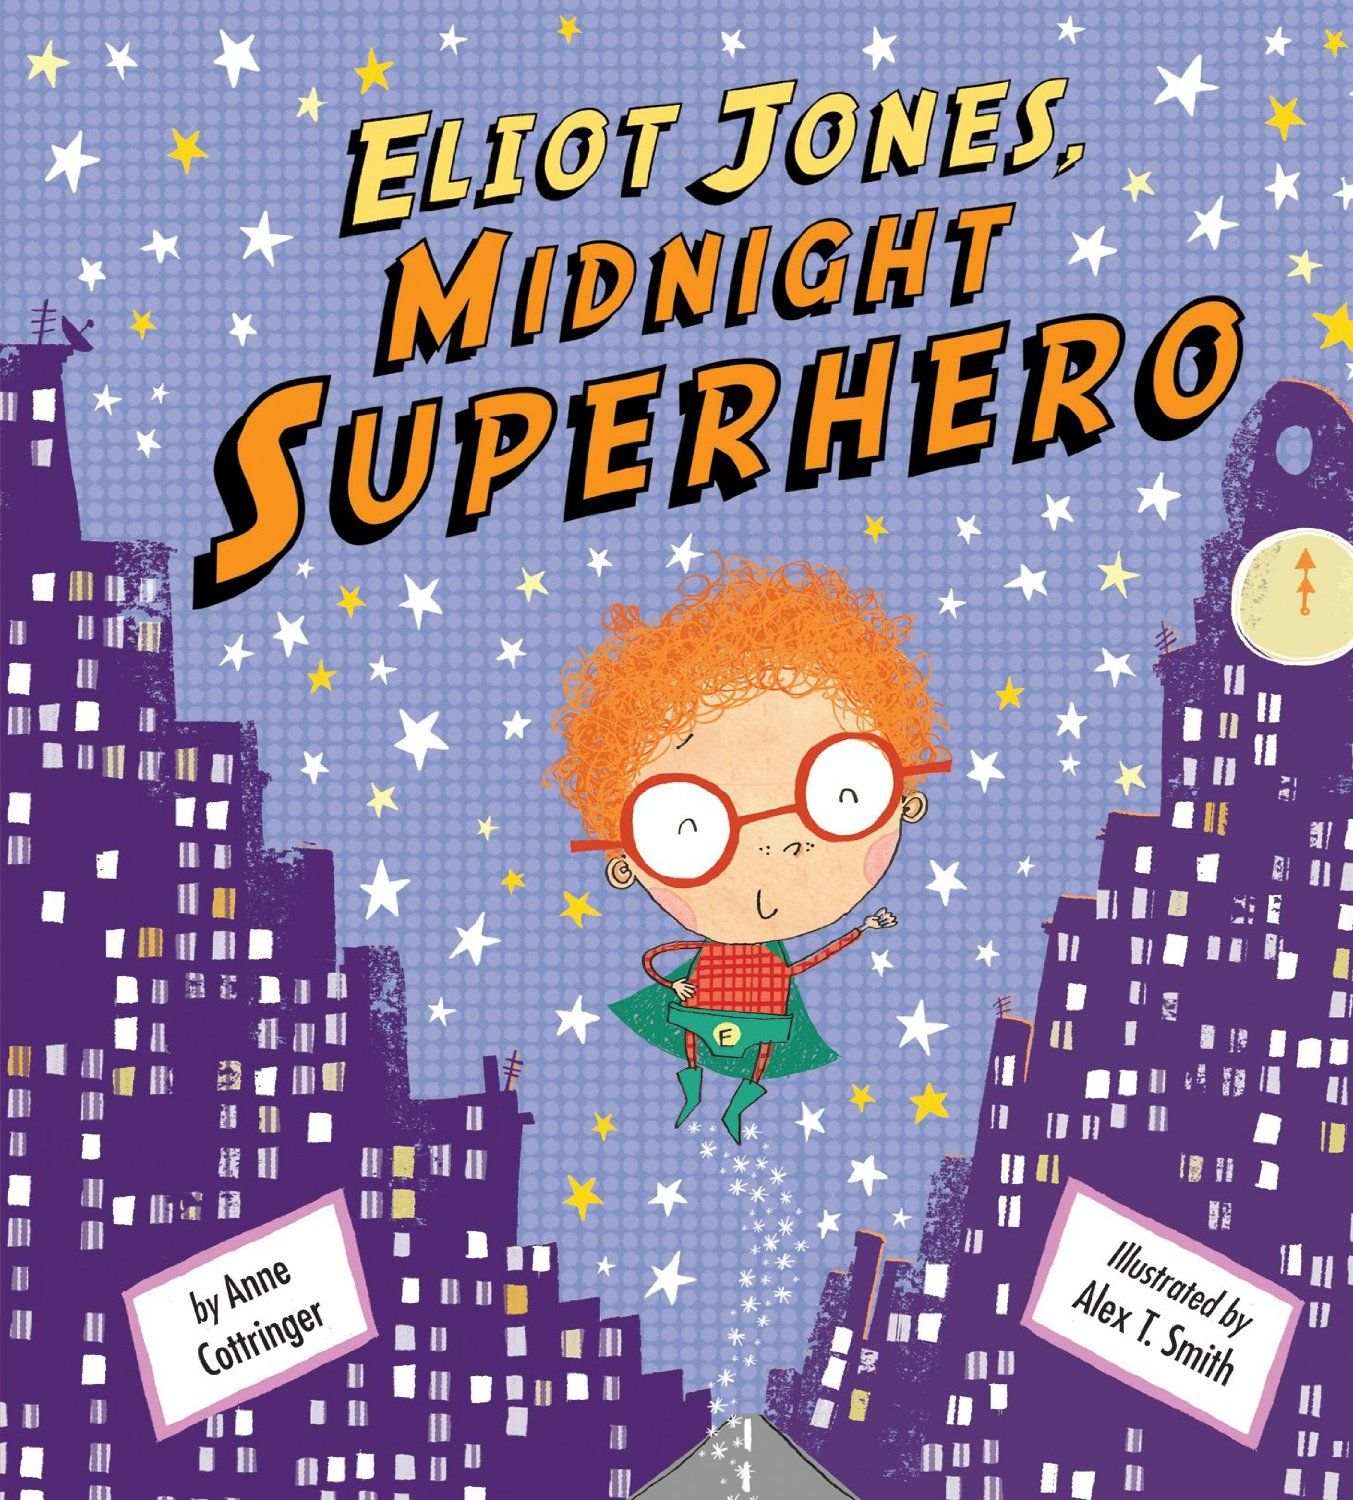 Eliot Jones, Midnight Superheroby Anne Cottringer, especially great for the younger crowd